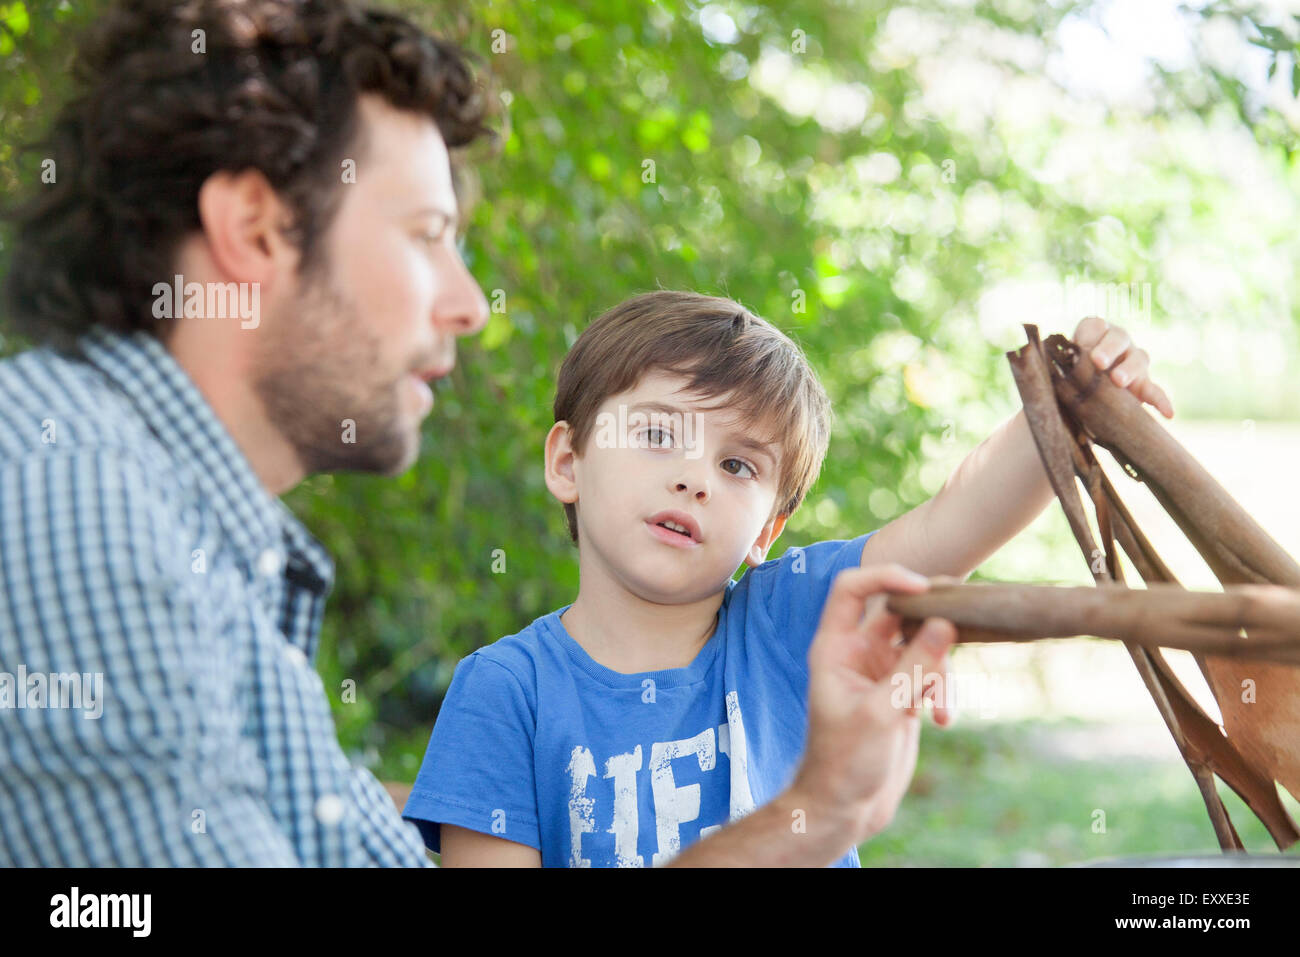 Father and son spending quality time together outdoors - Stock Image